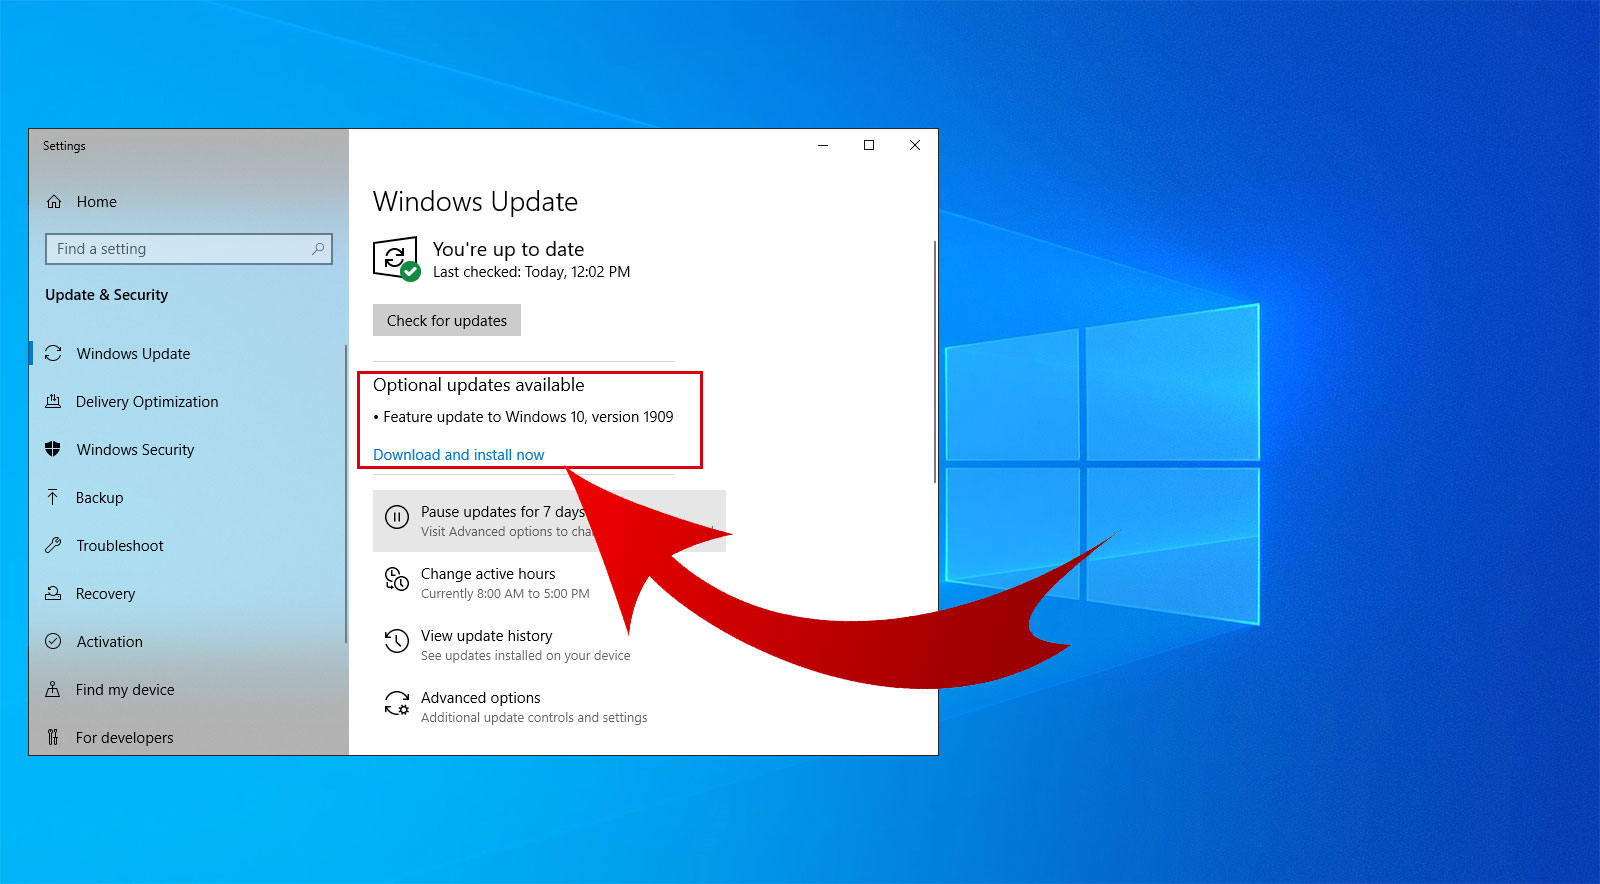 showing the recent updates for Windows 10